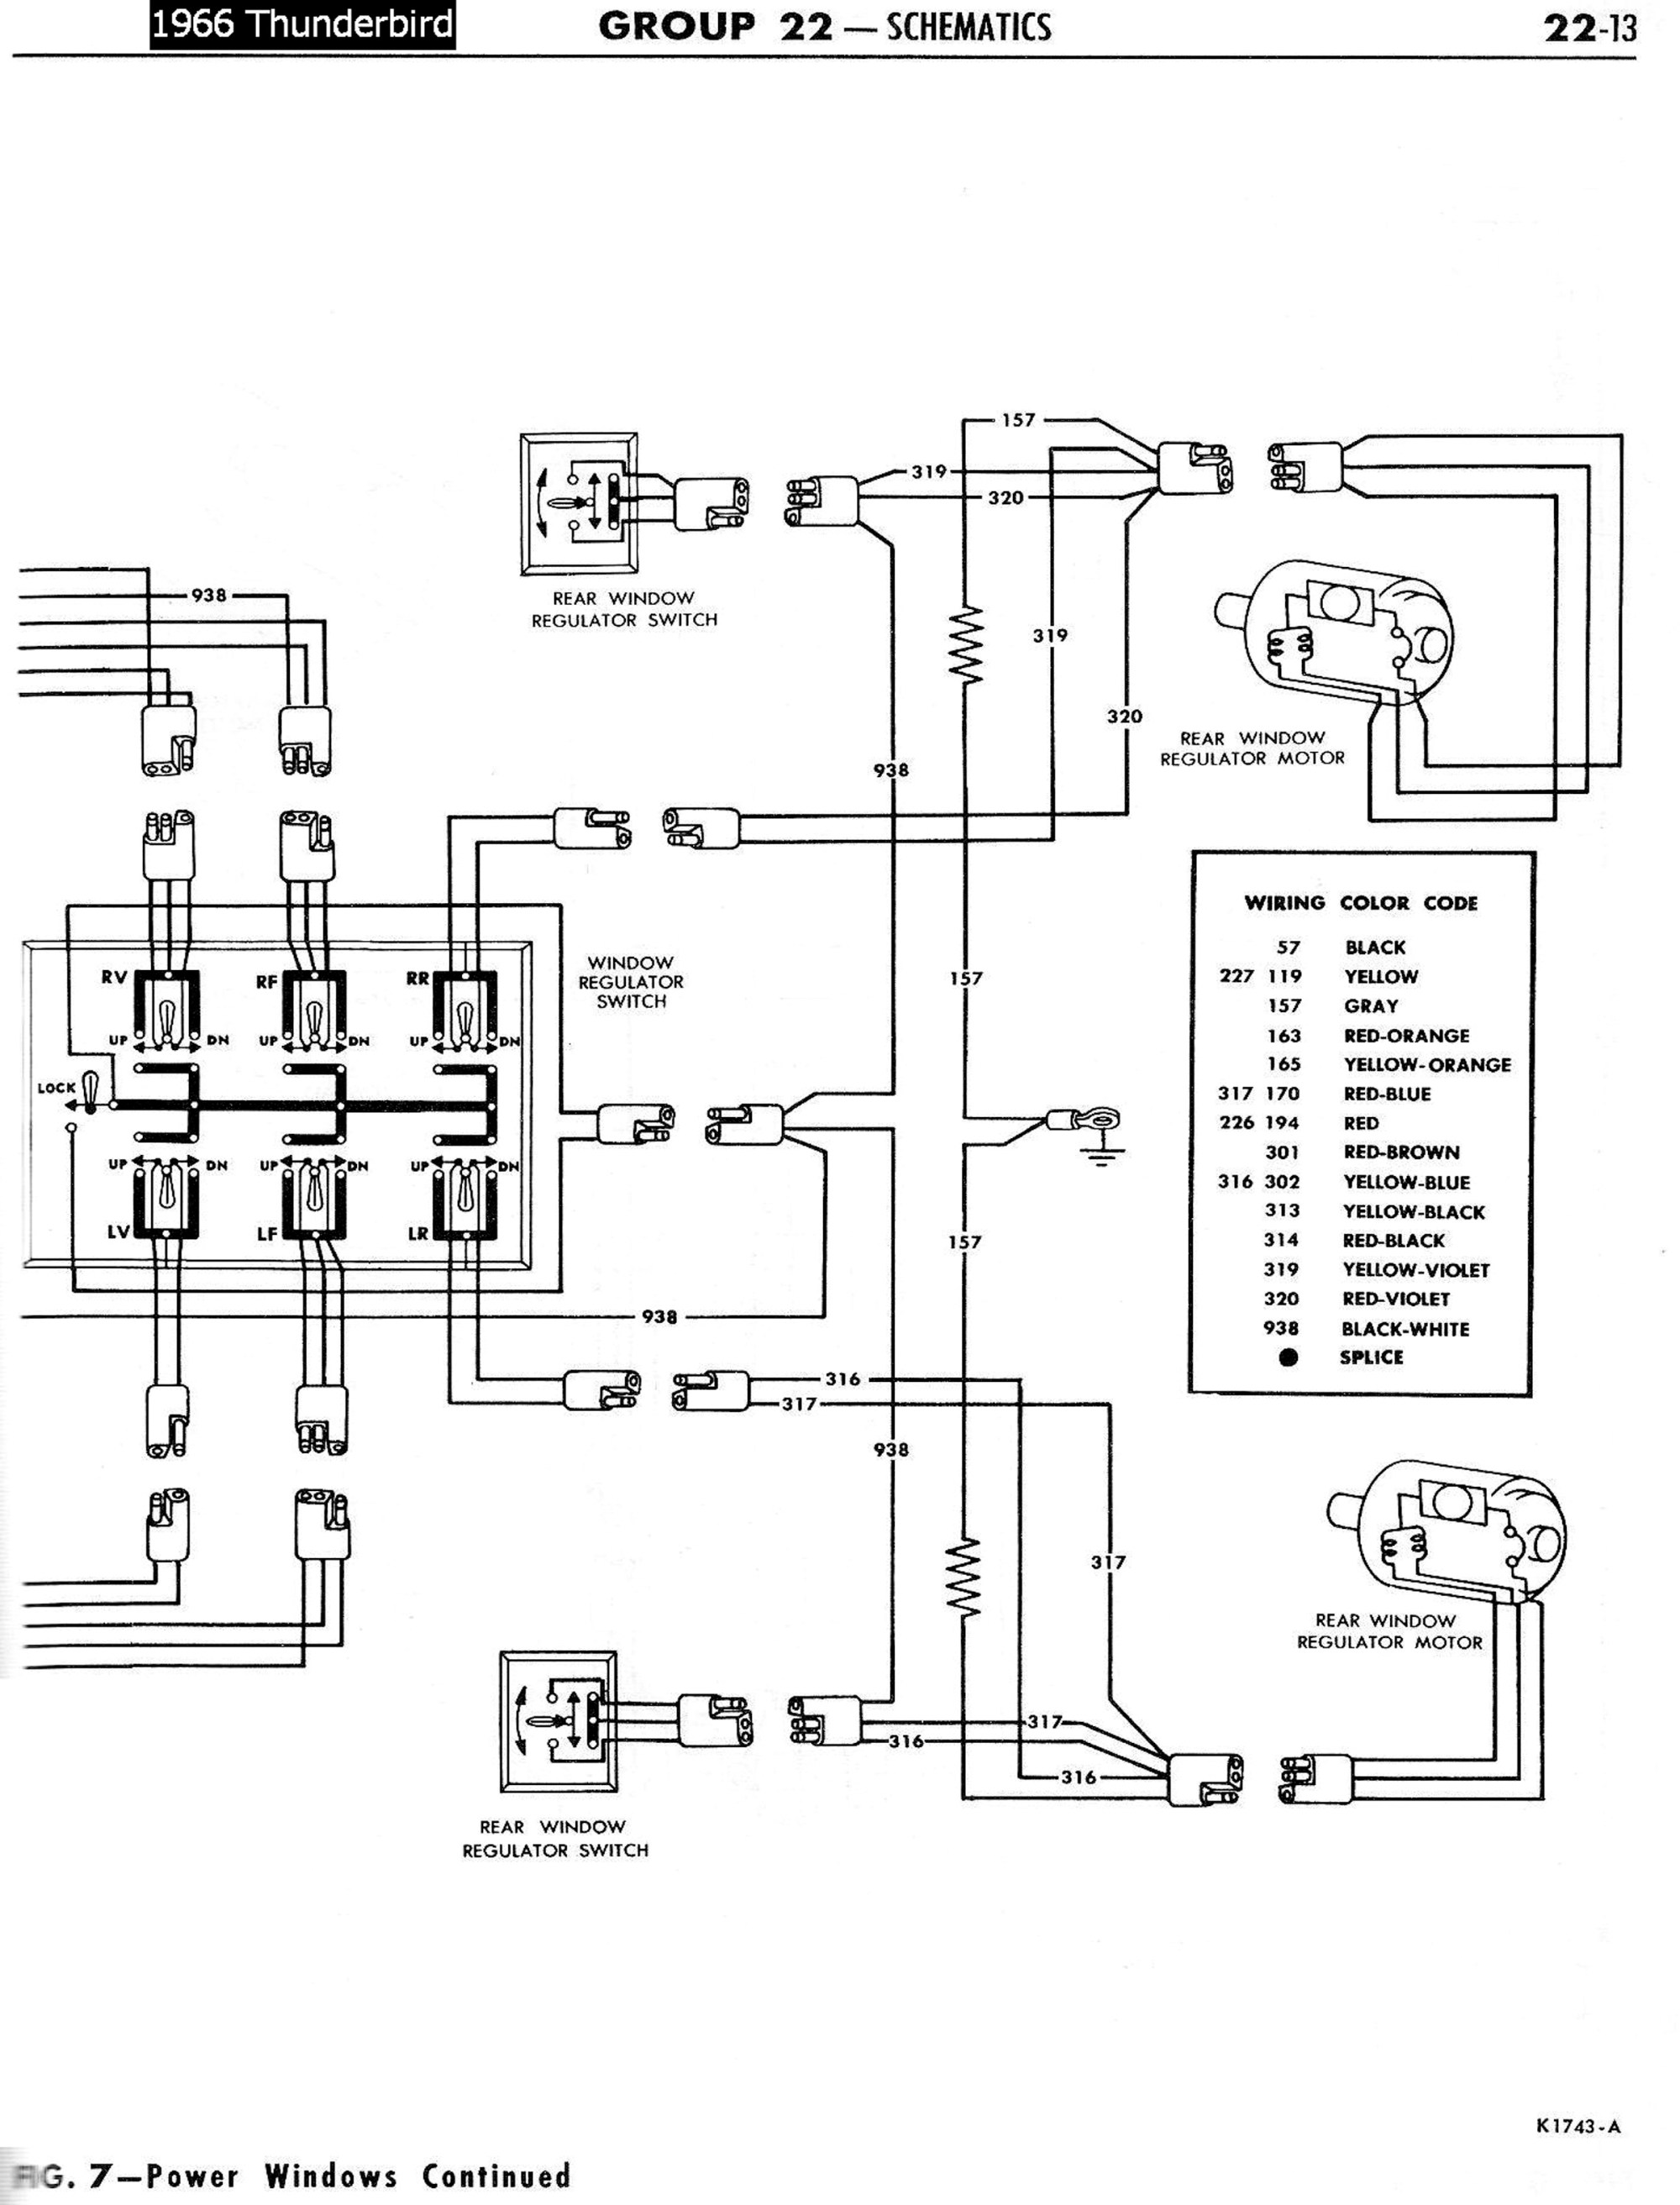 hight resolution of 1968 ford f100 fuel gauge wiring diagram wiring diagram todays 1968 f100 alternator wiring 1968 f100 blinker wiring diagrams